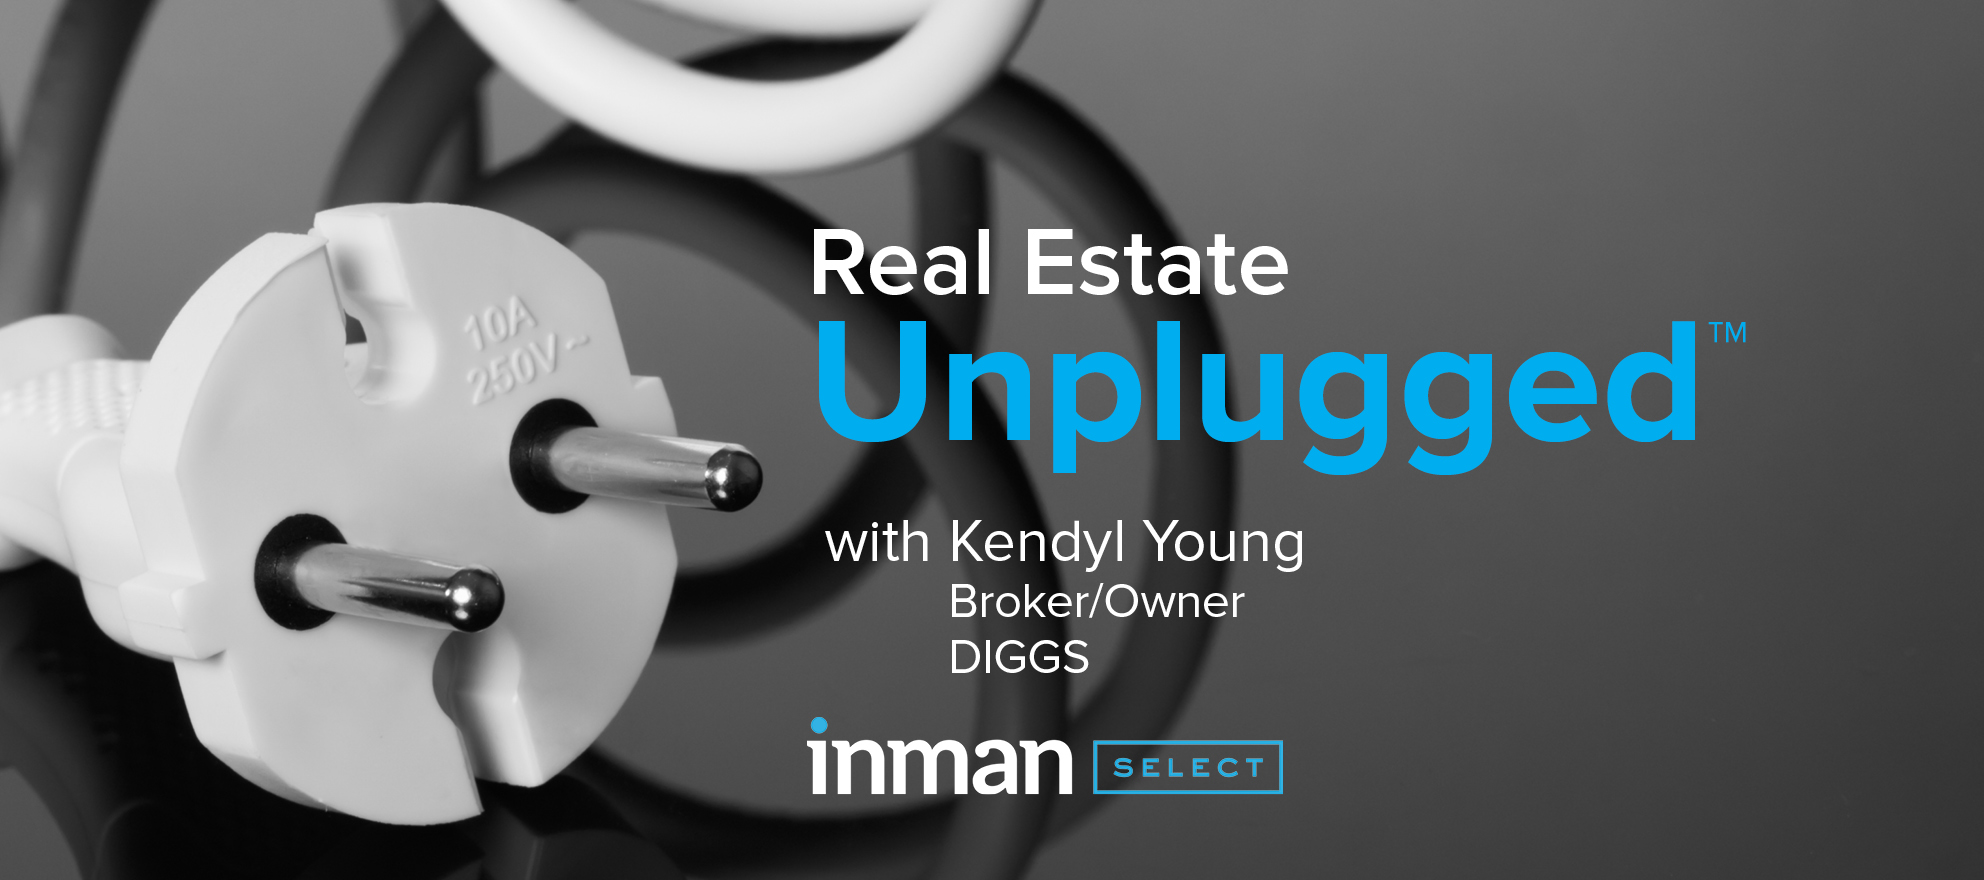 Kendyl Young on shifting focus from agent-centric to serving the customer